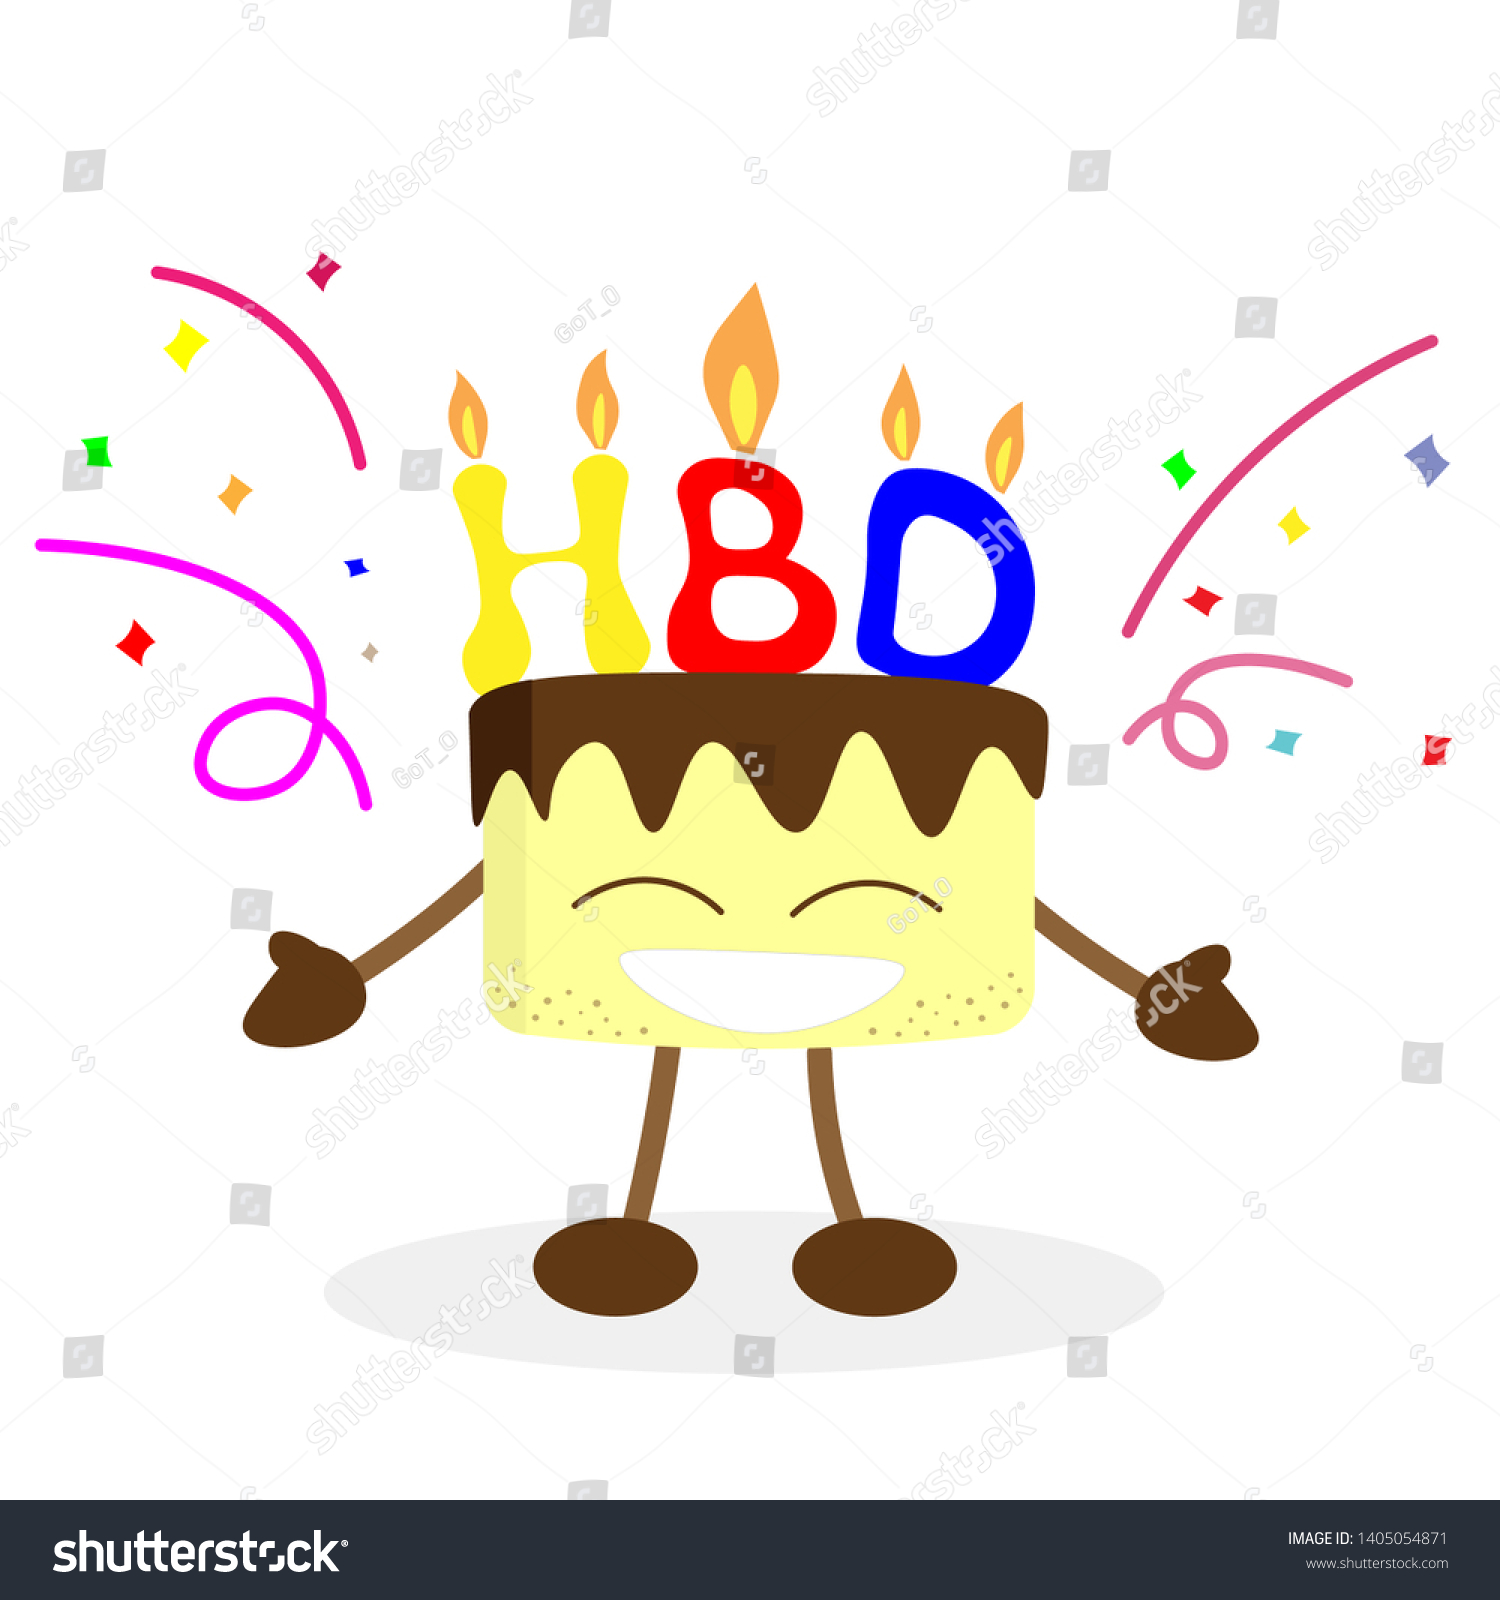 Stupendous Happy Birthday Font Cake Man Stock Vector Royalty Free 1405054871 Funny Birthday Cards Online Fluifree Goldxyz